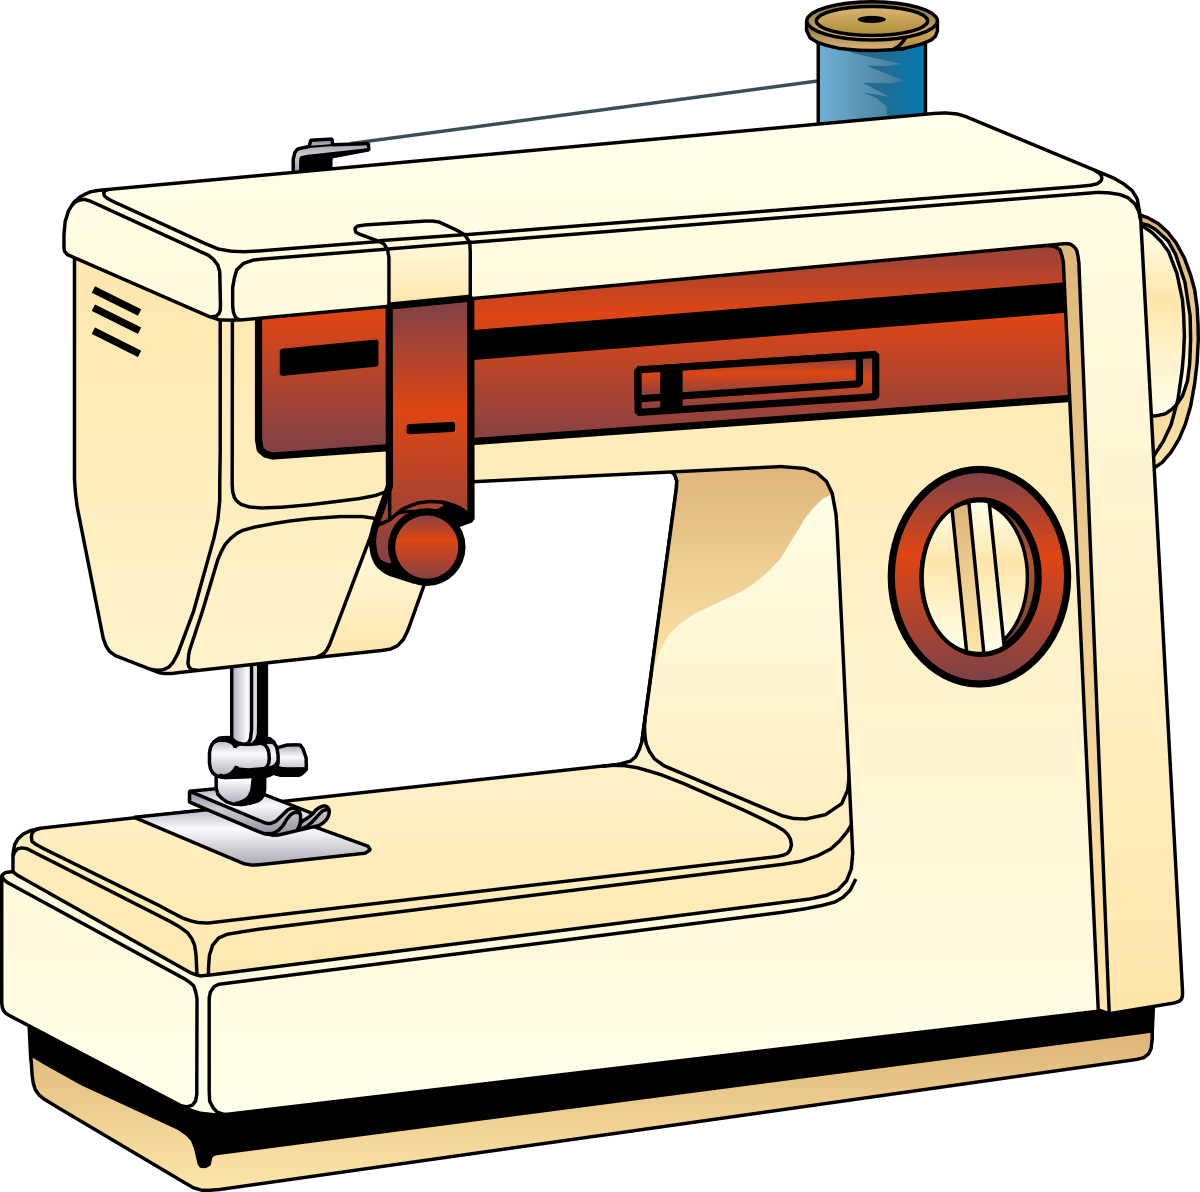 sewing machine clipart rh worldartsme com singer sewing machine clipart singer sewing machine clipart